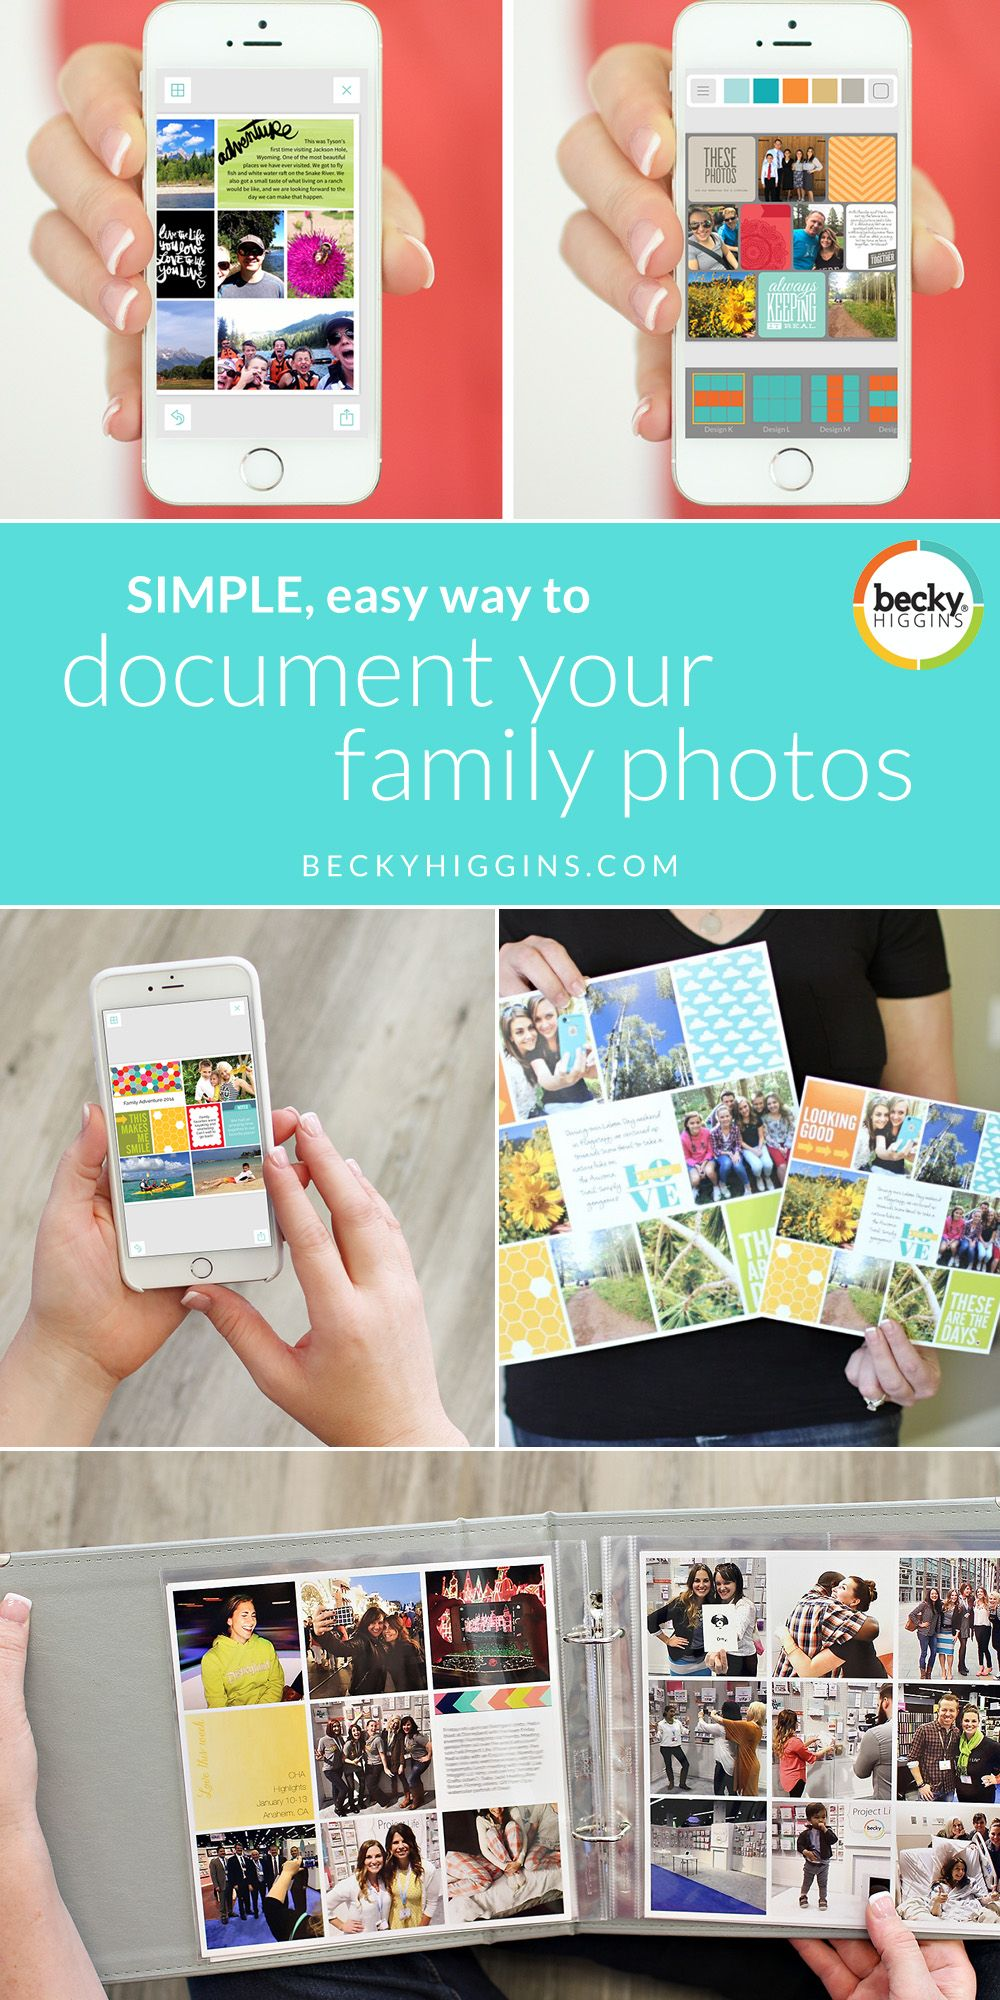 A simple, easy way to document your family photos using